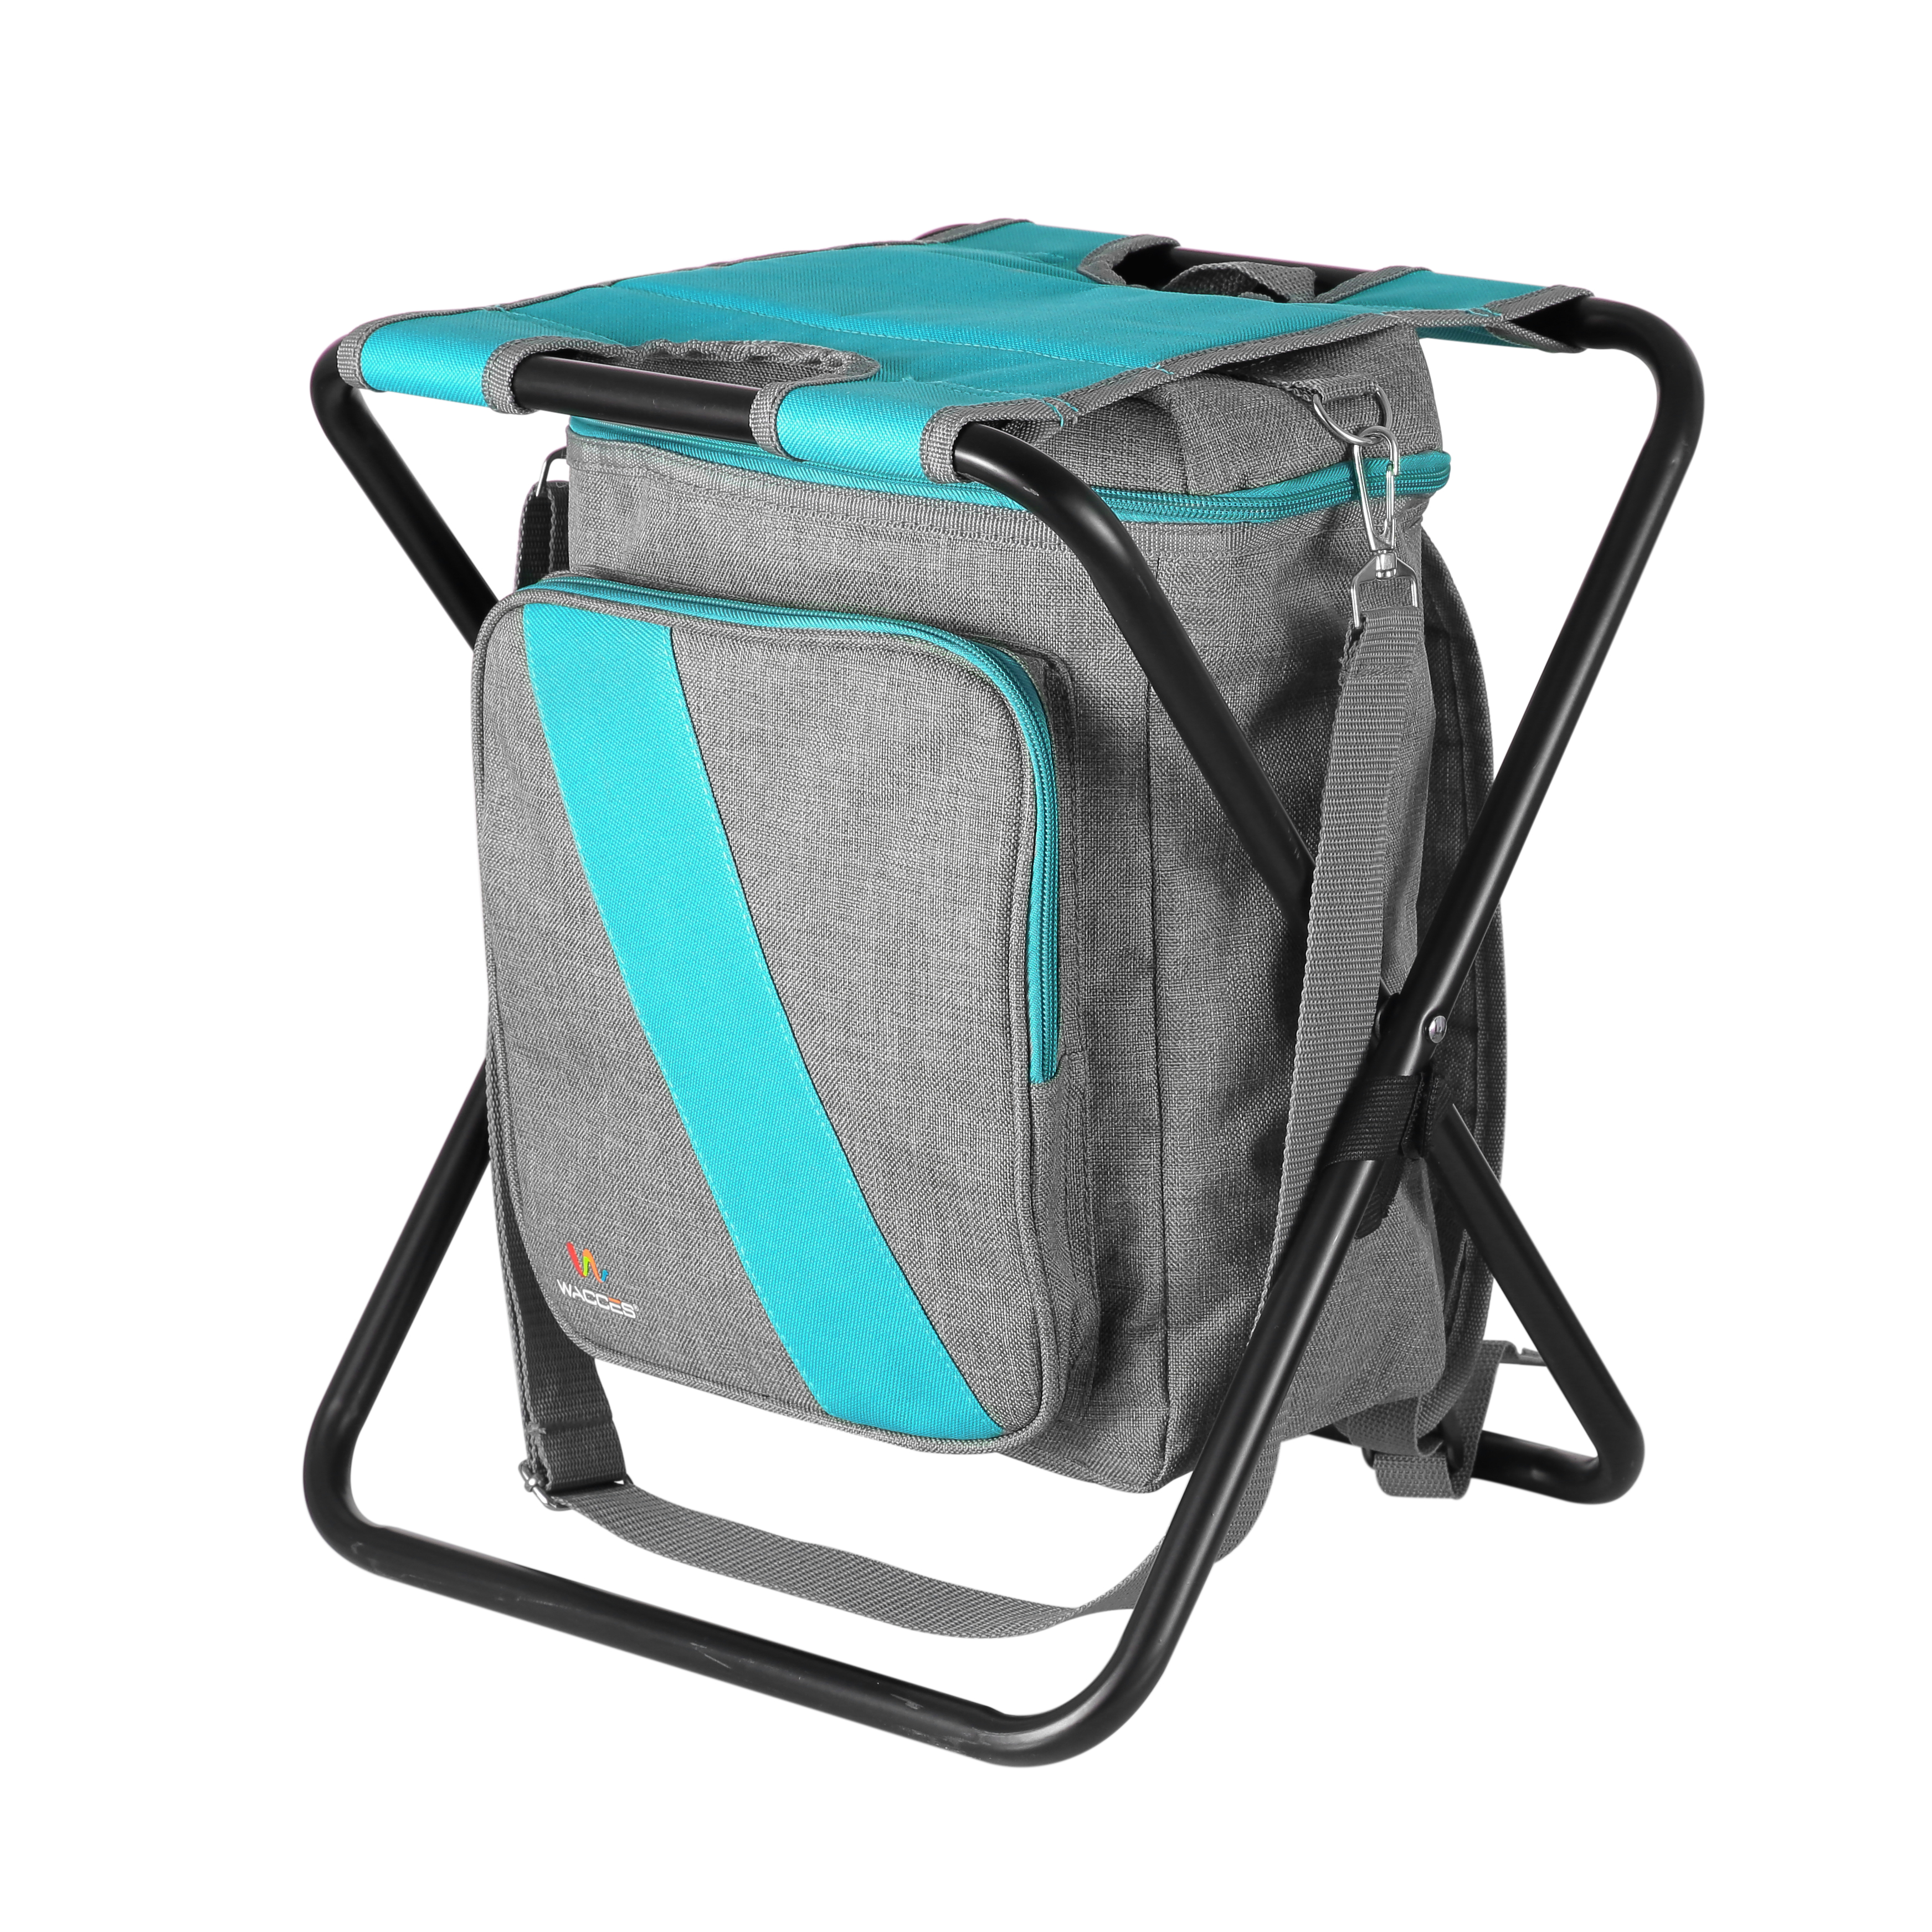 Wacces Multi Purpose Portable 3 In 1 Cooler Backpack With